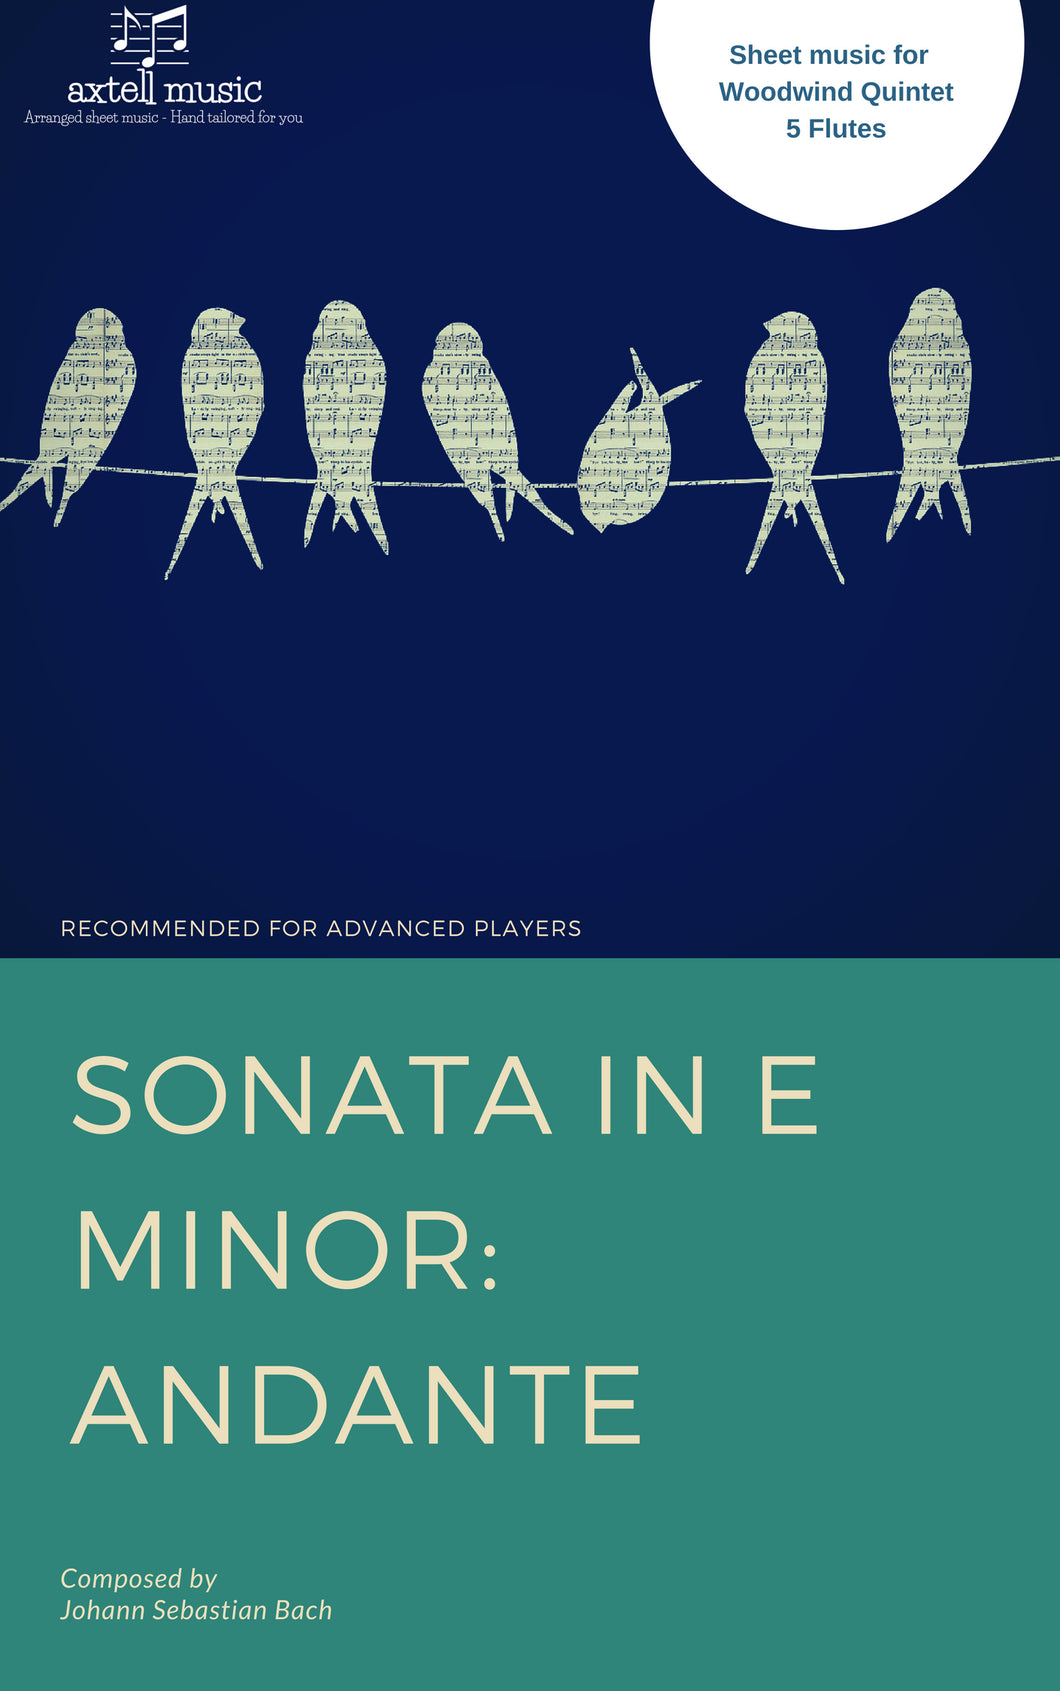 Cover art work for Sonata in E Minor Andante composed by Johann Sebastian Bach. Sheet Music arranged for Woodwind Ensembles, 3 Flutes and 2 Clarinets. Full score and Instrumental parts included to download and print.